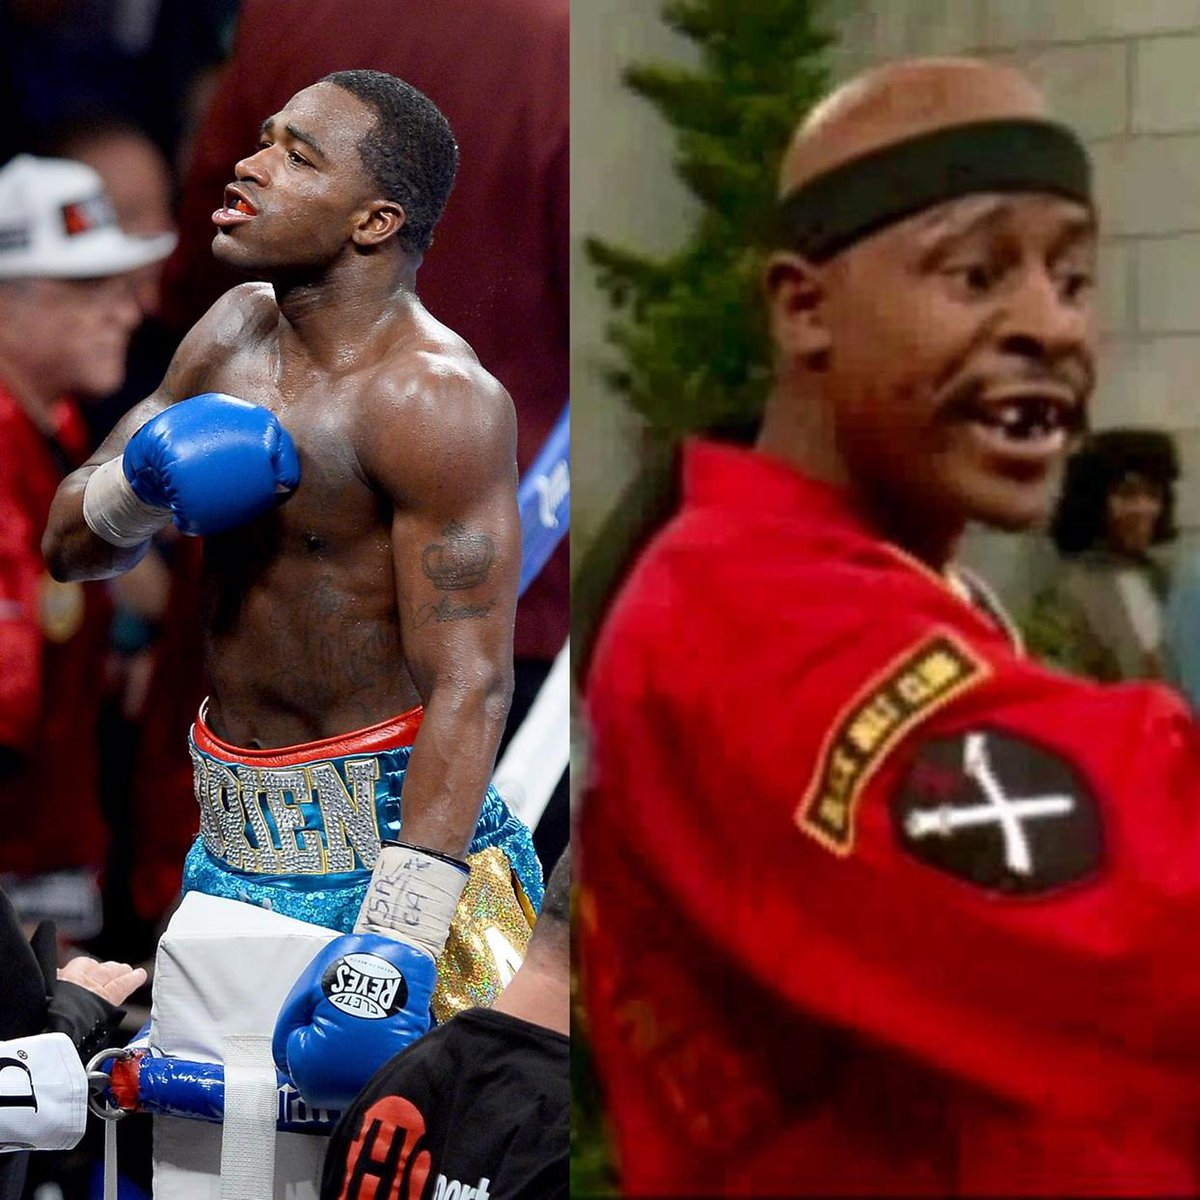 Broner is slowly turning into Dragonfly Jones. Lol. http://t.co/l8uC6OXUQ7